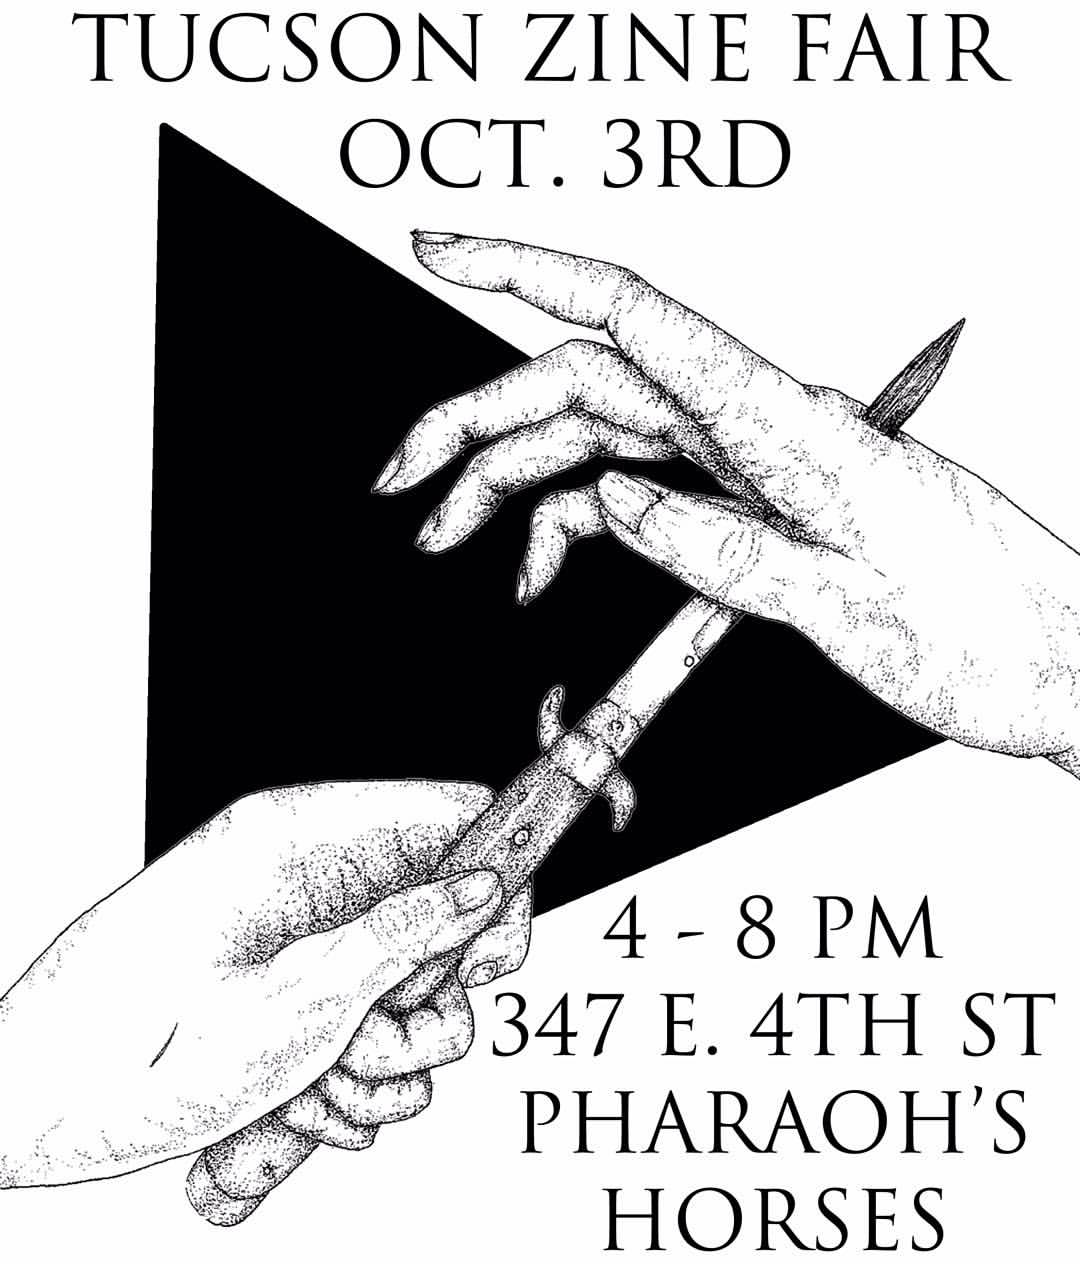 Arizona:: Come thru the Tucson Zine Fair tomorrow and scoop some zines from us¡¡